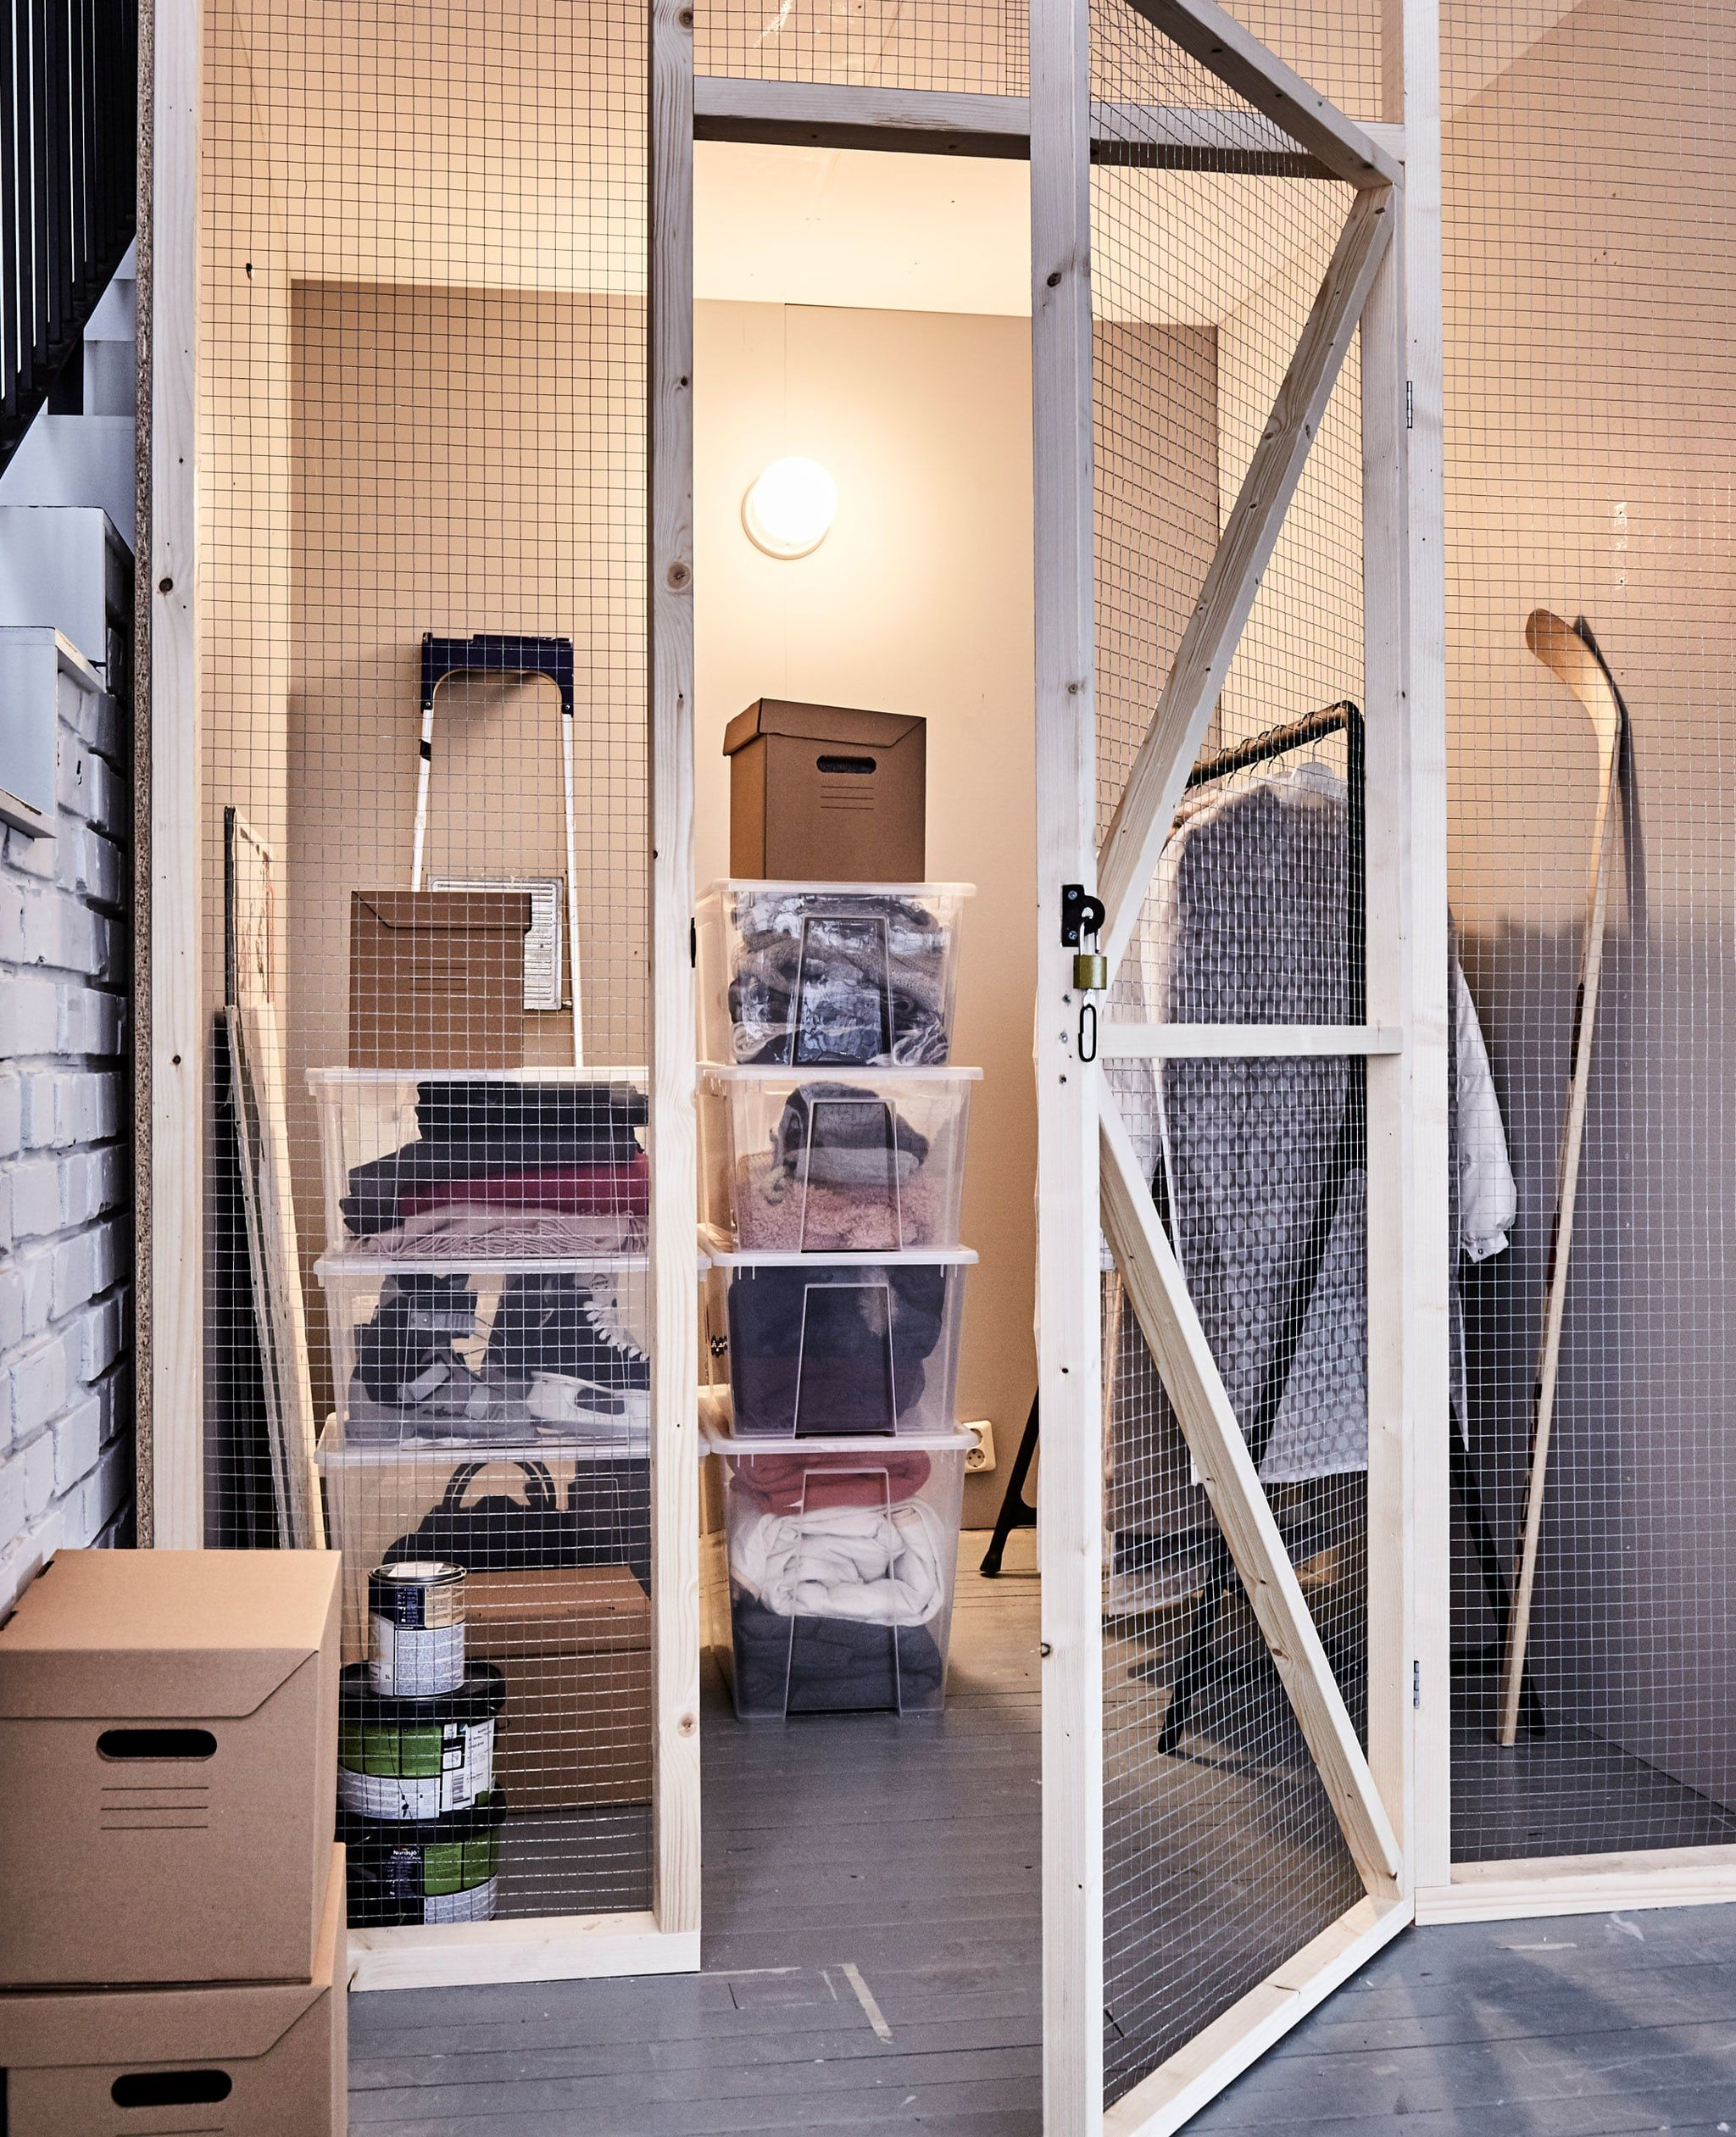 31 Attic Storage Containers Boxes Ideas Home Storage Solutions Attic Storage Storage Containers